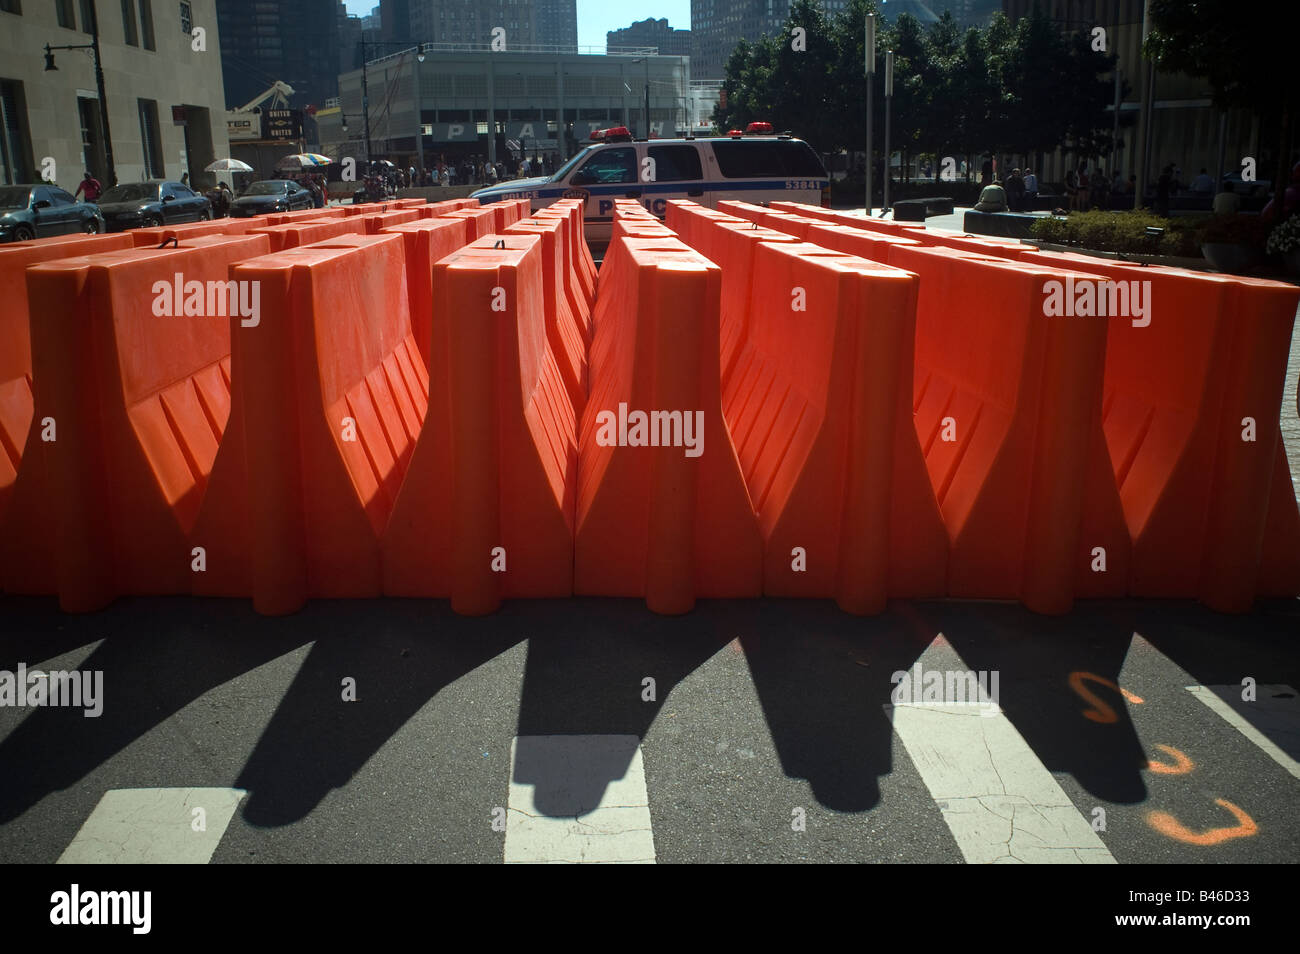 Orange traffic barriers at the World Financial Center in New York on